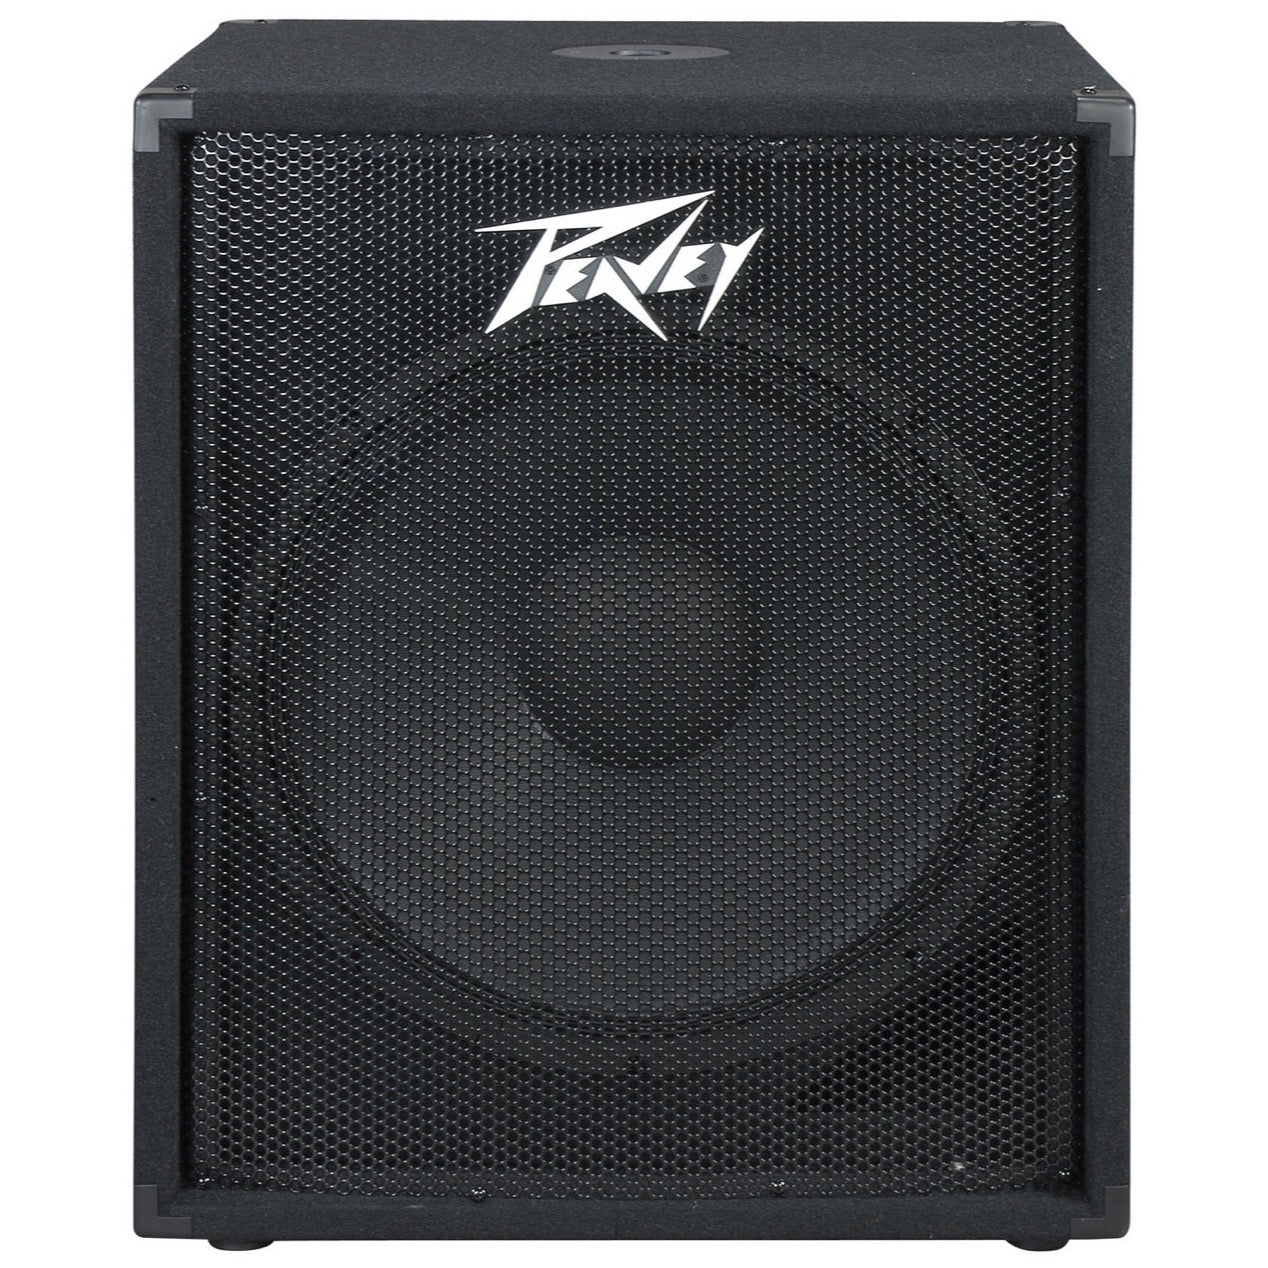 Peavey PV118 Passive, Unpowered Subwoofer (1x18 Inch)